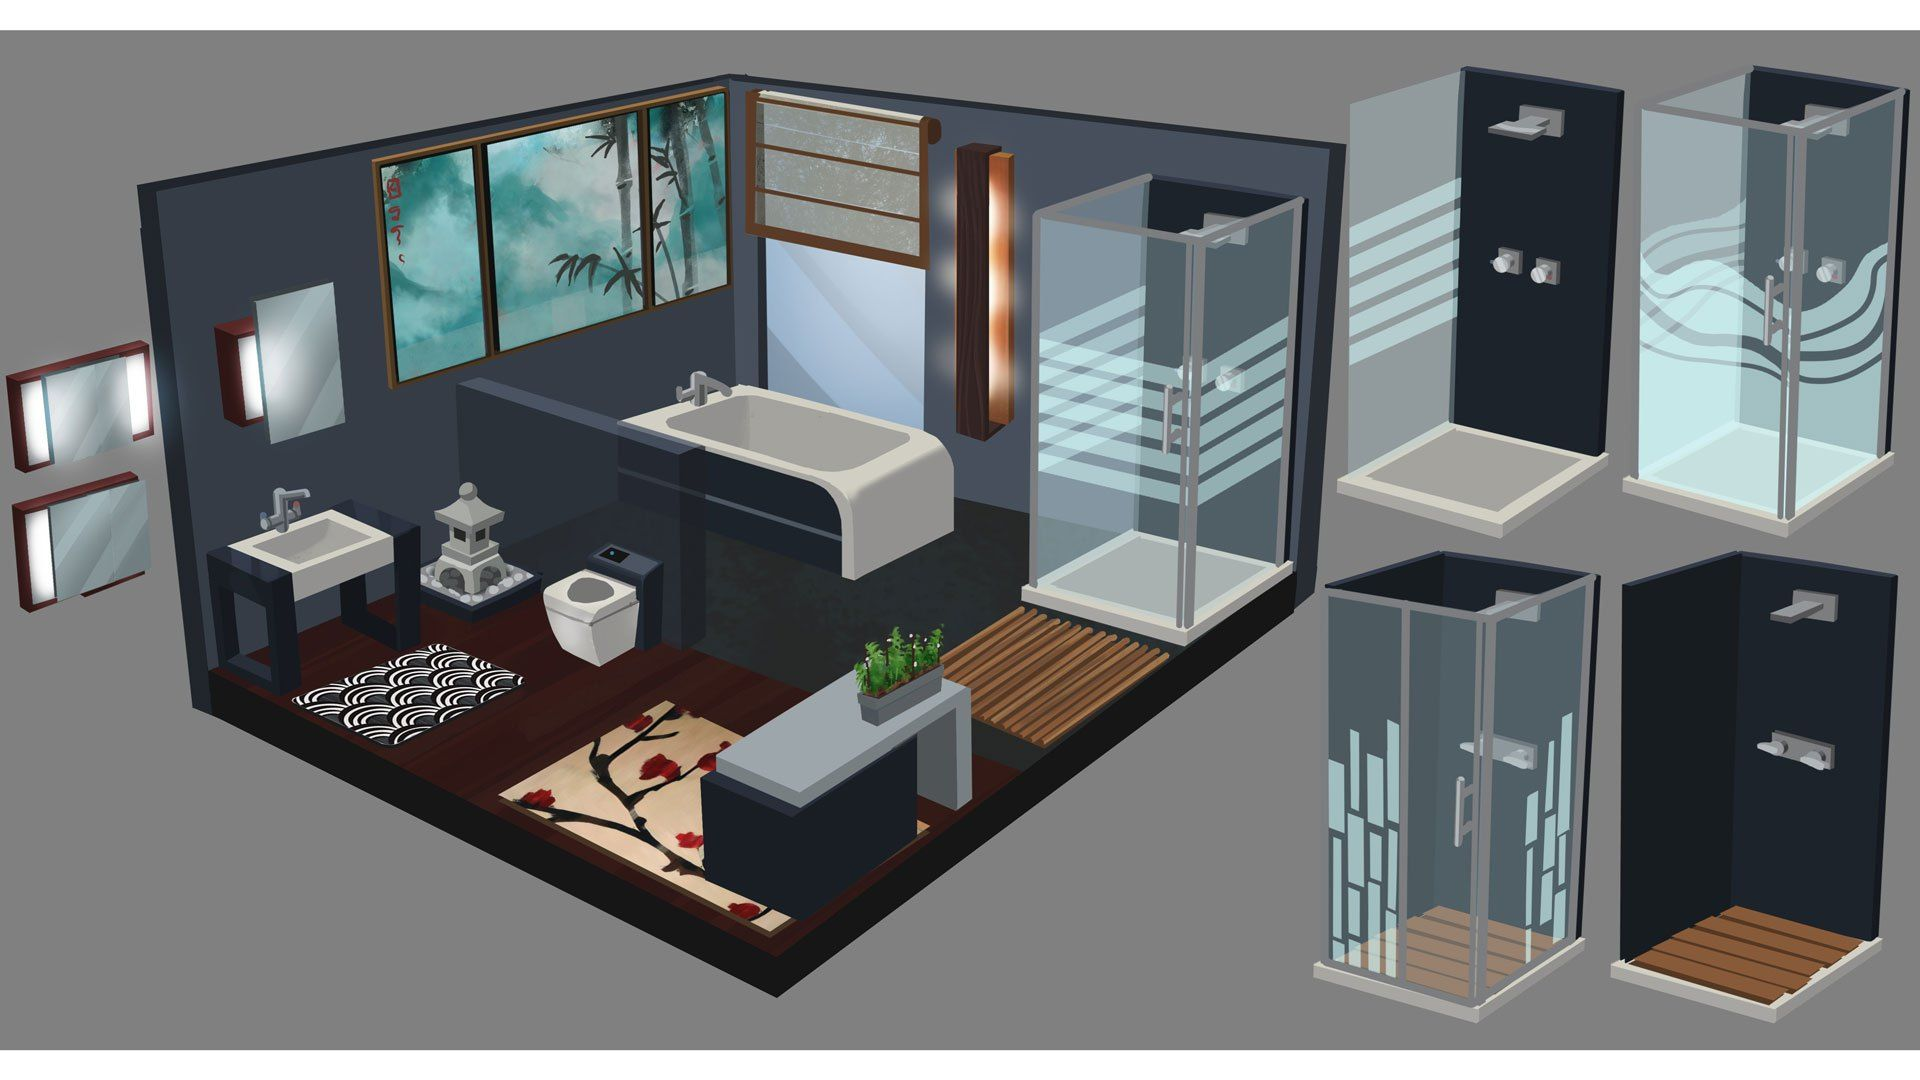 Ts4 City Living Concept Art Sims 4 House Design Tiny House Layout Sims 4 Modern House